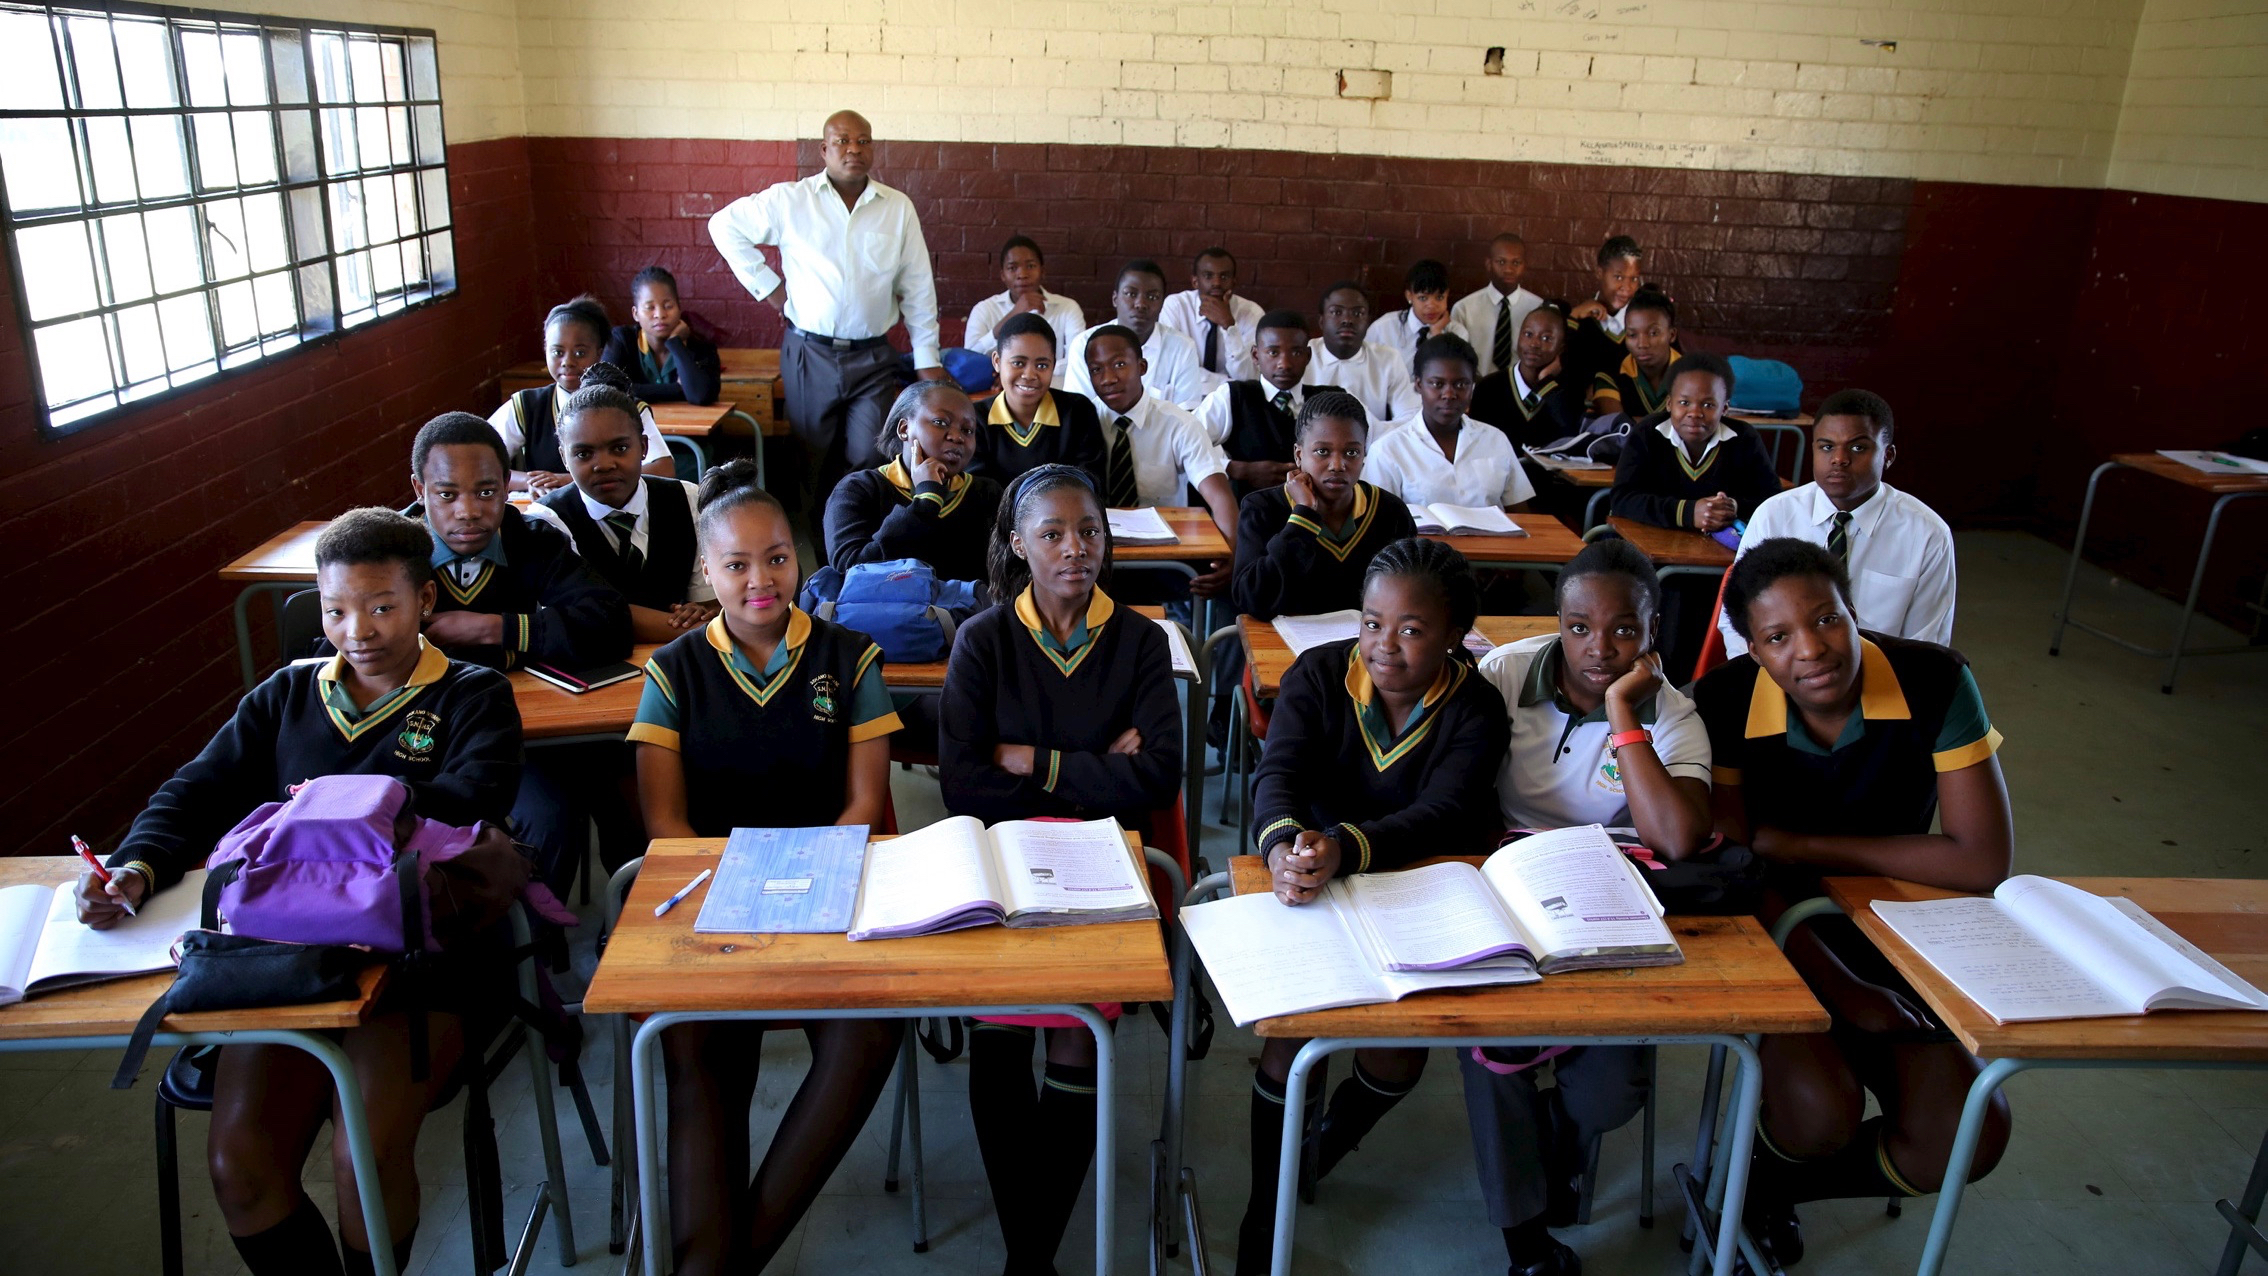 outh Africa's education department reduces the pass mark for mathematics to 20% in public schools